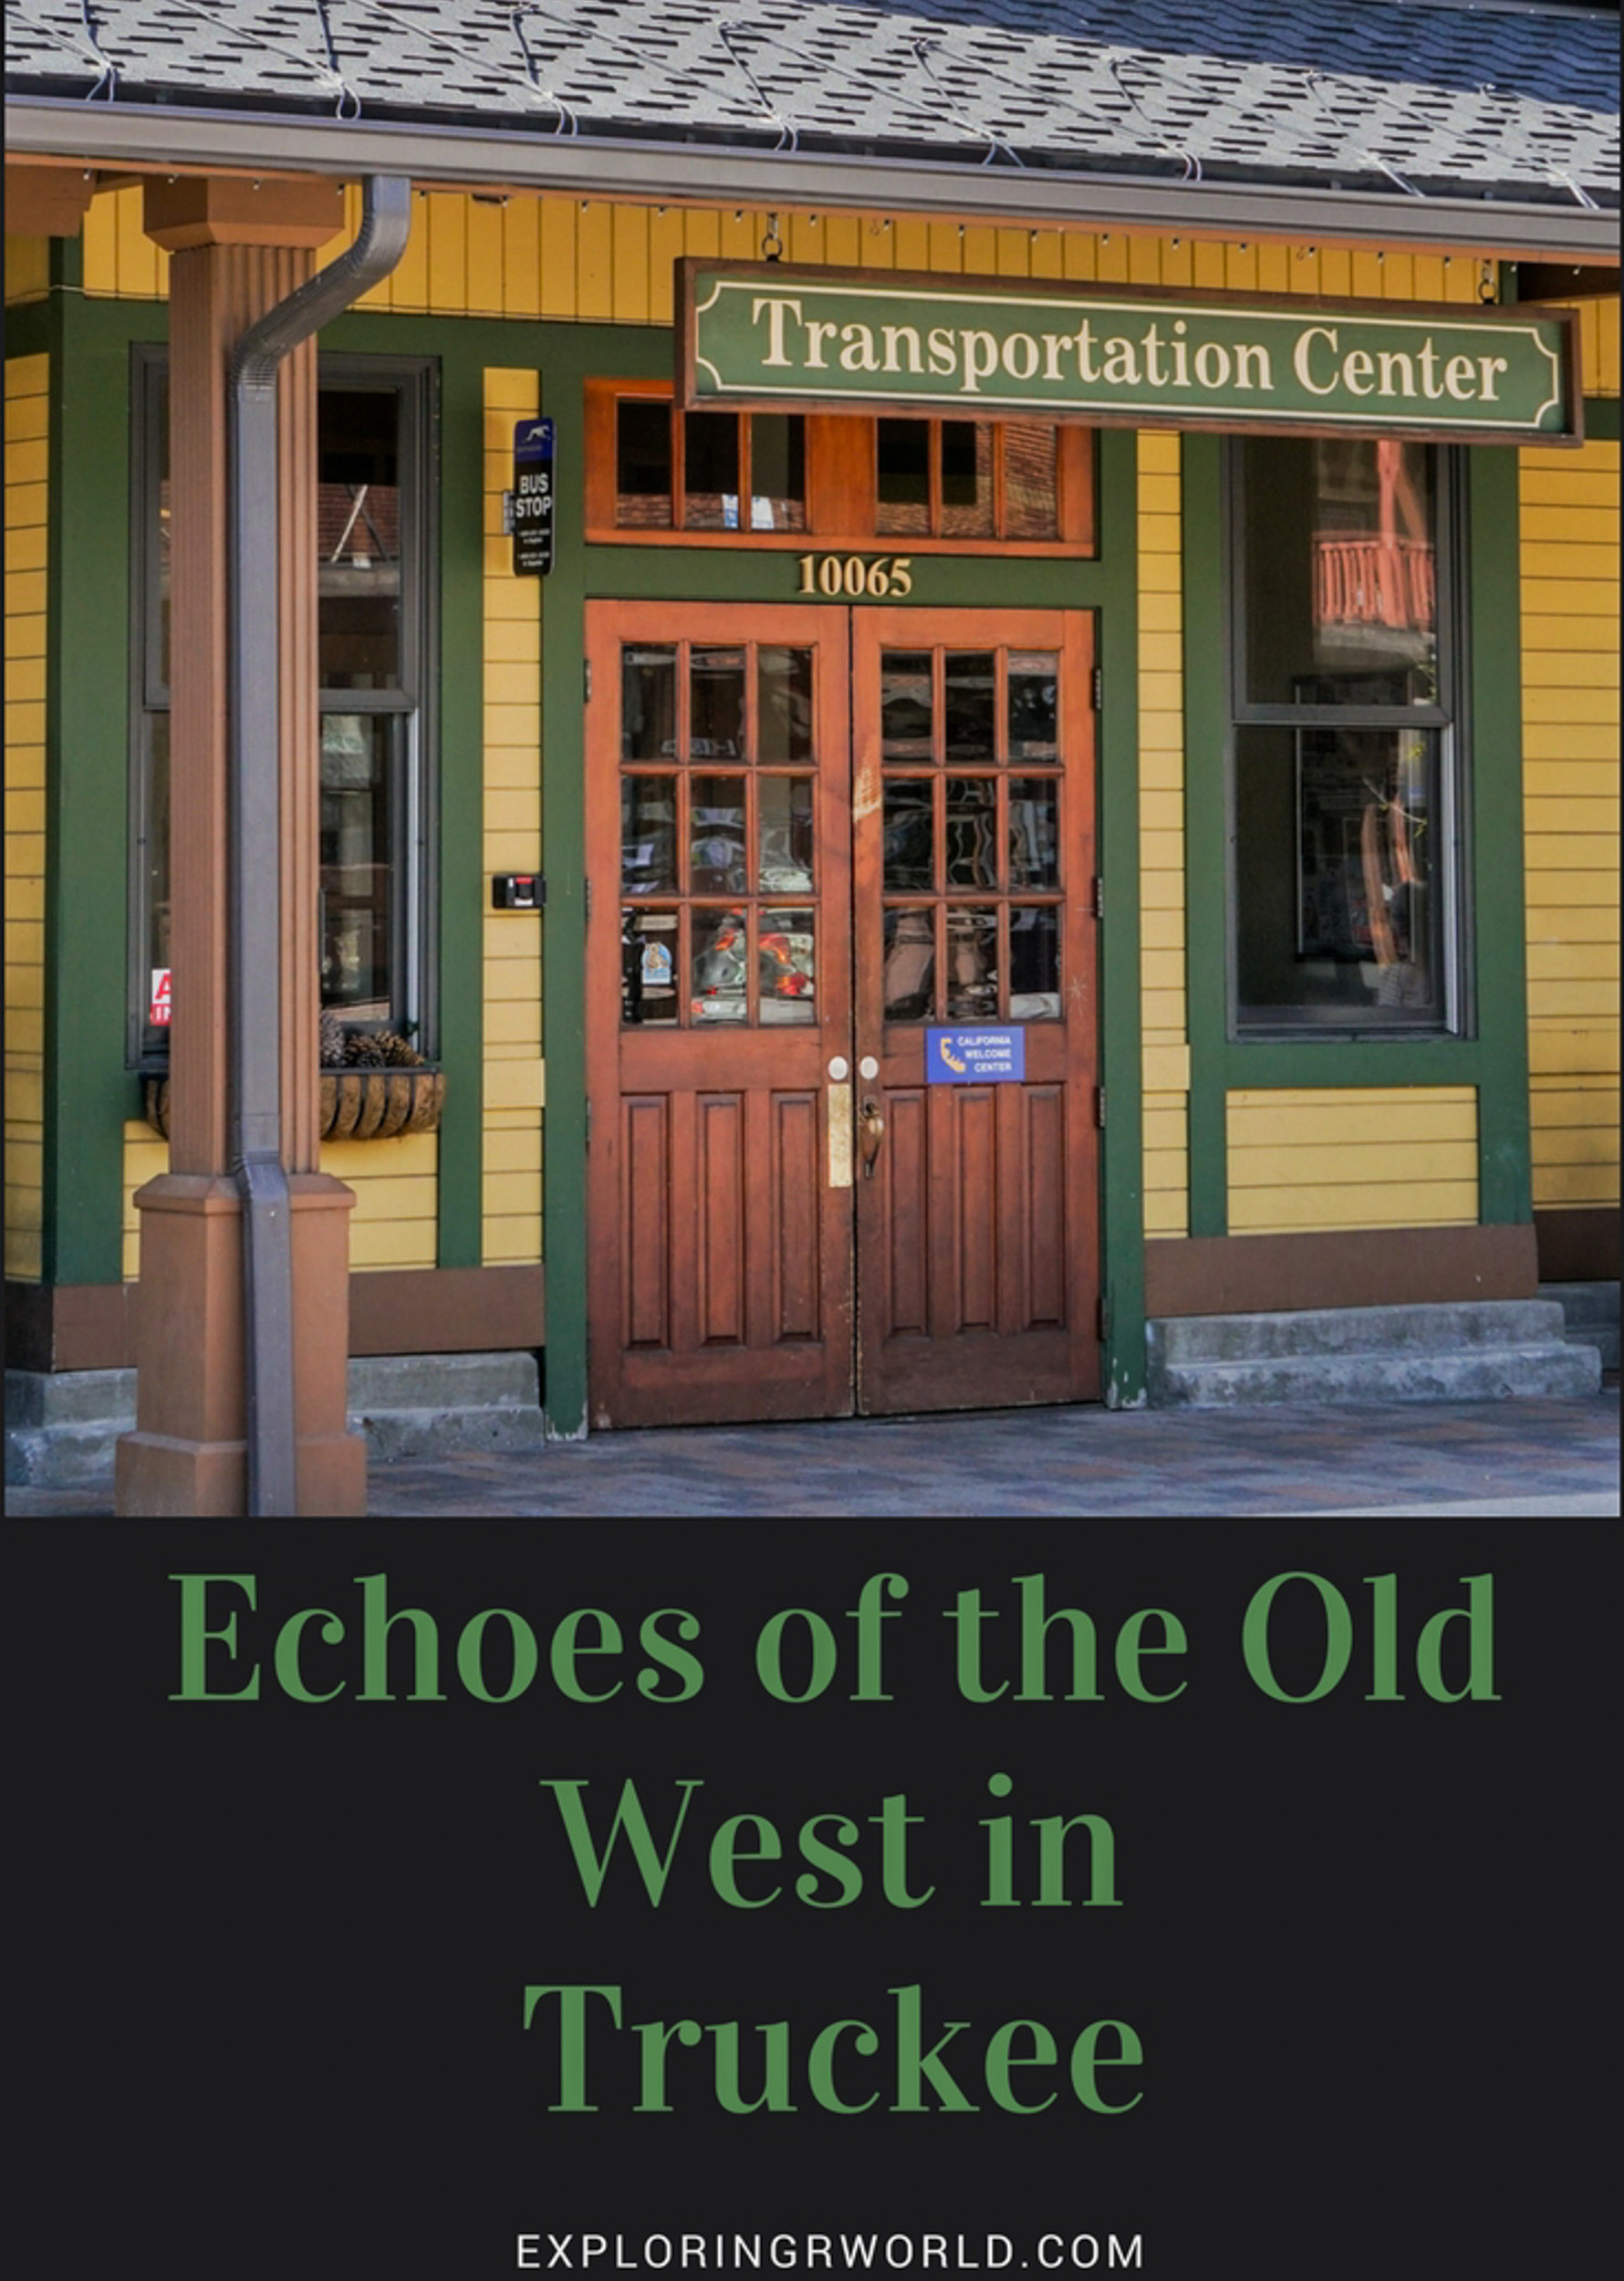 Echoes of the Old West in Truckee